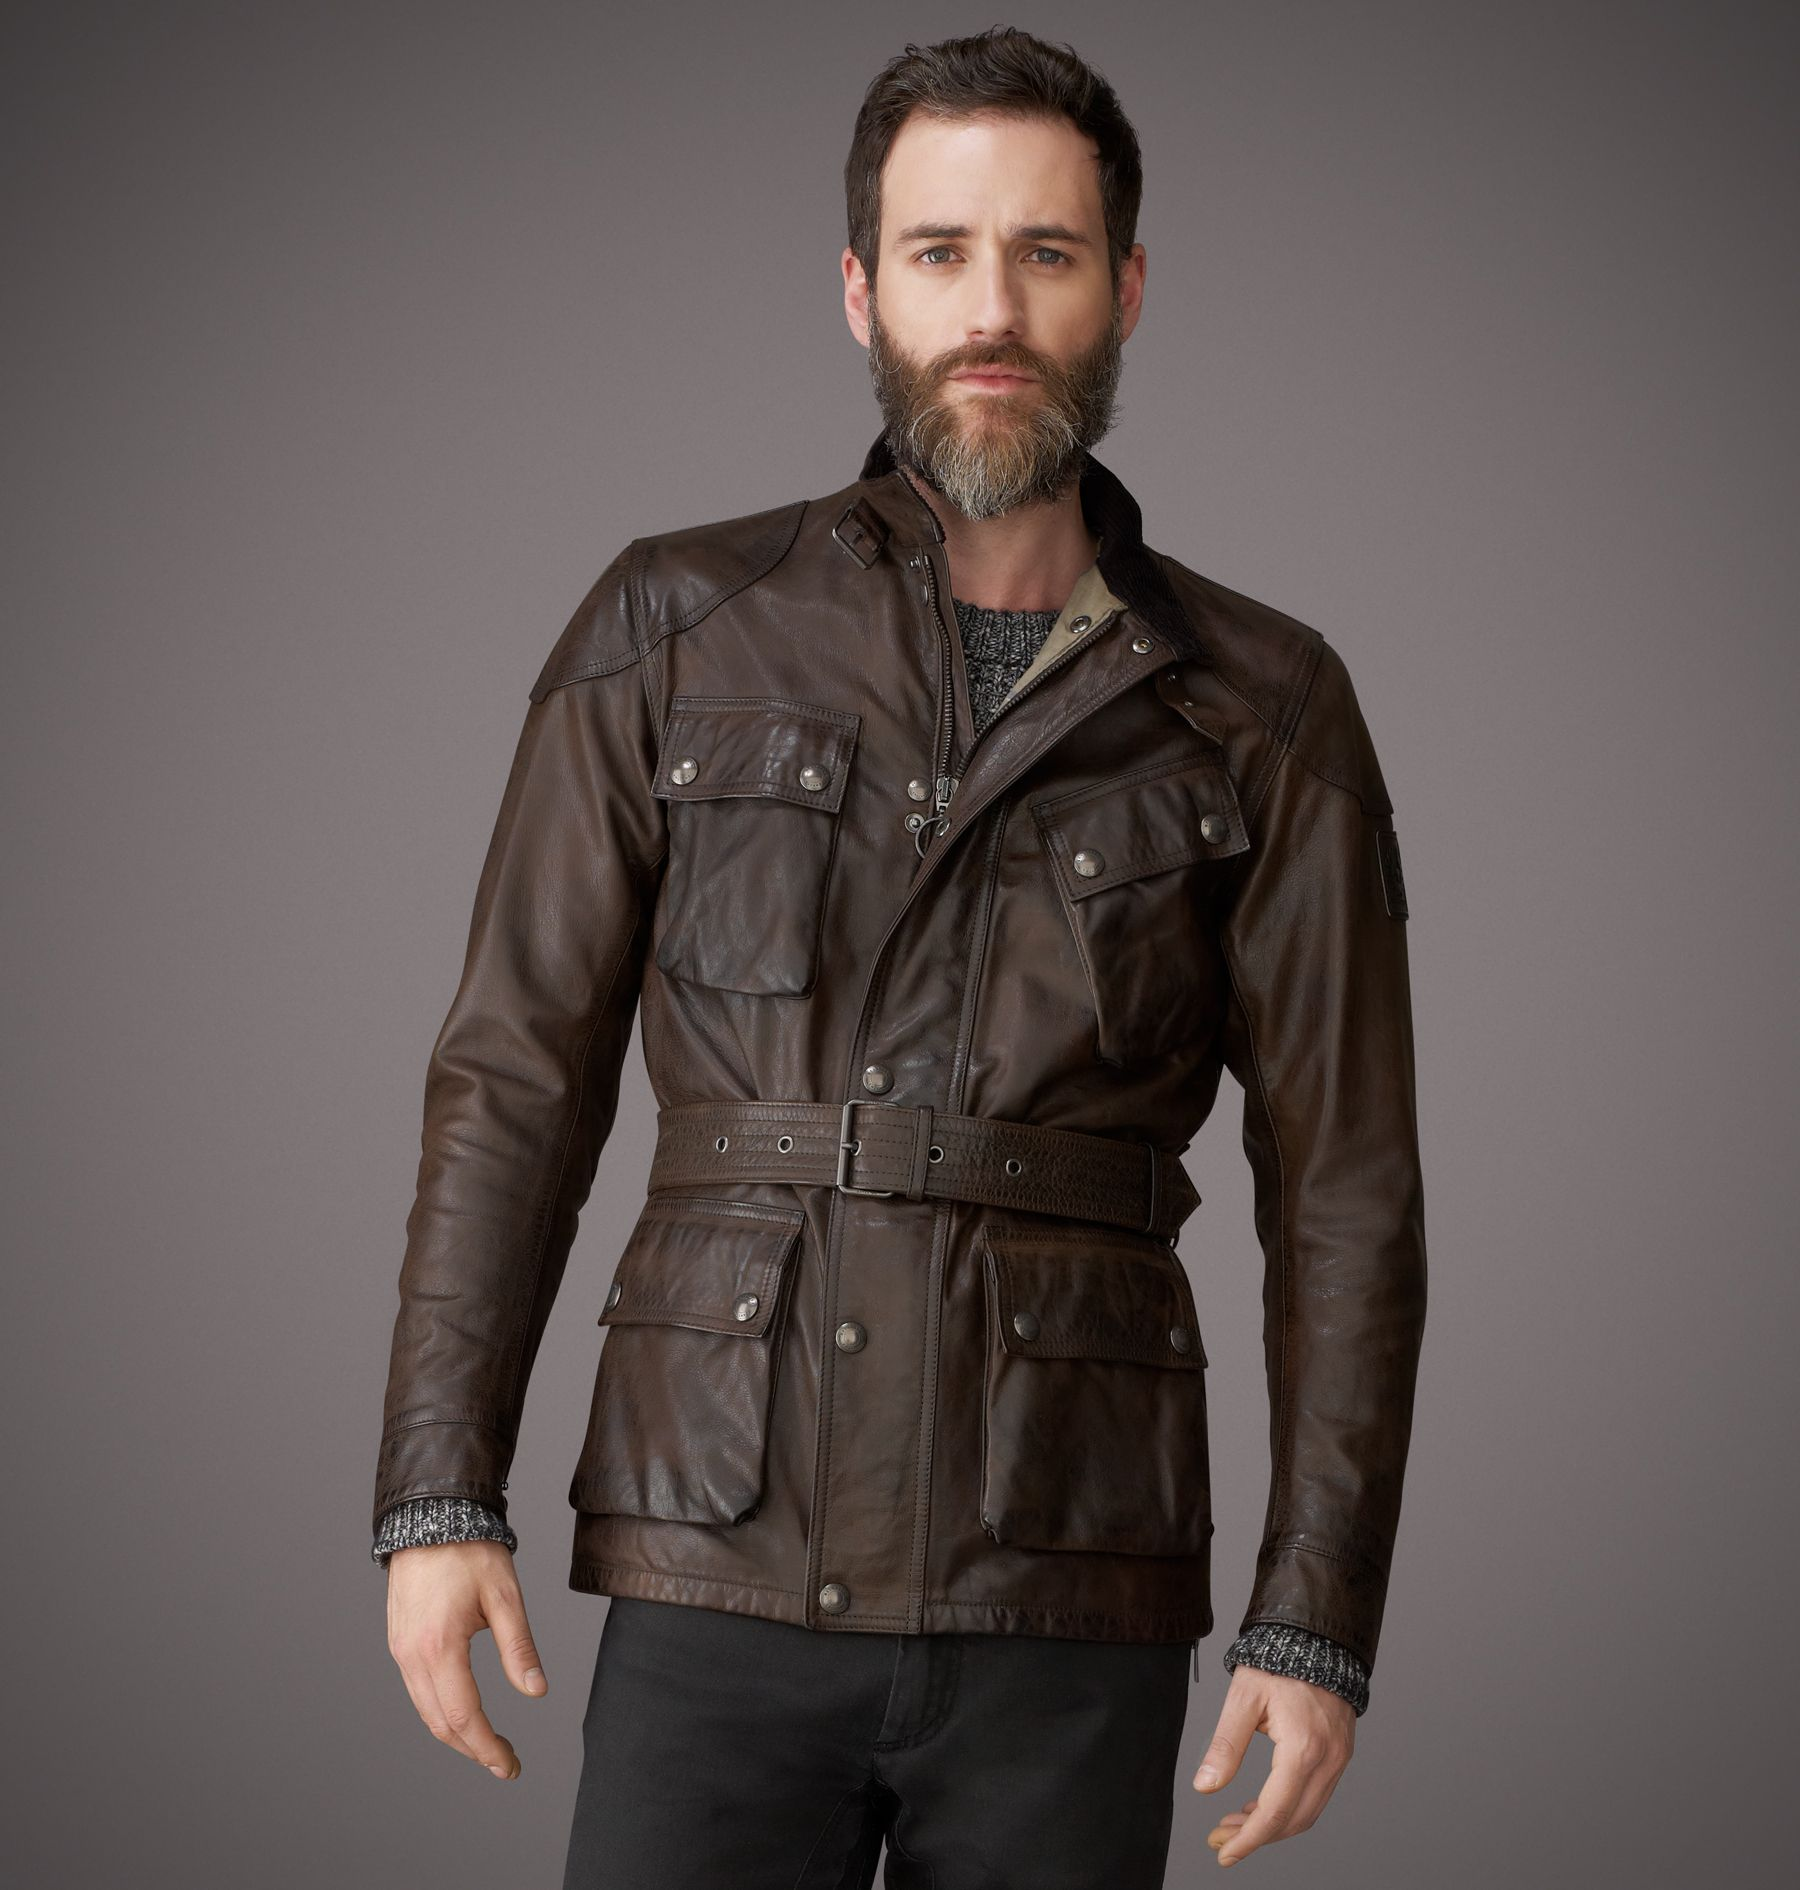 THE PANTHER JACKET on Belstaff Clothing Pinterest